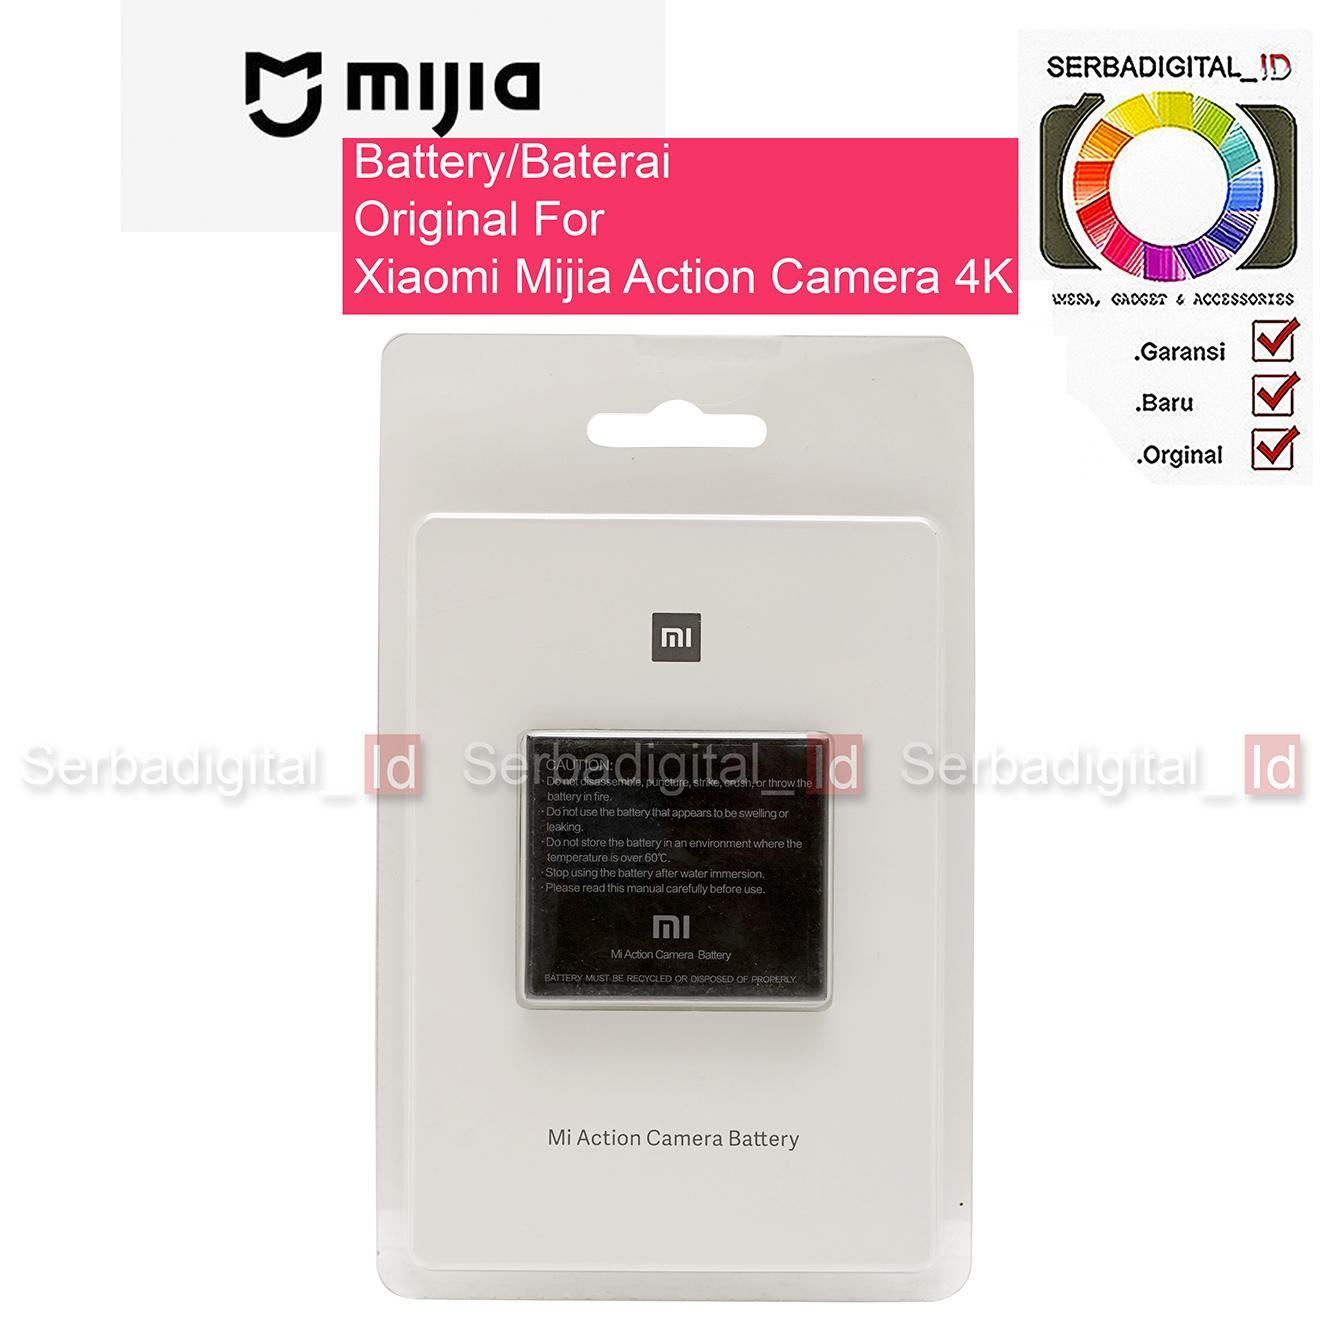 Battery/Baterai RLDC01FM Original For Xiaomi Mijia Action Camera 4K - Hitam